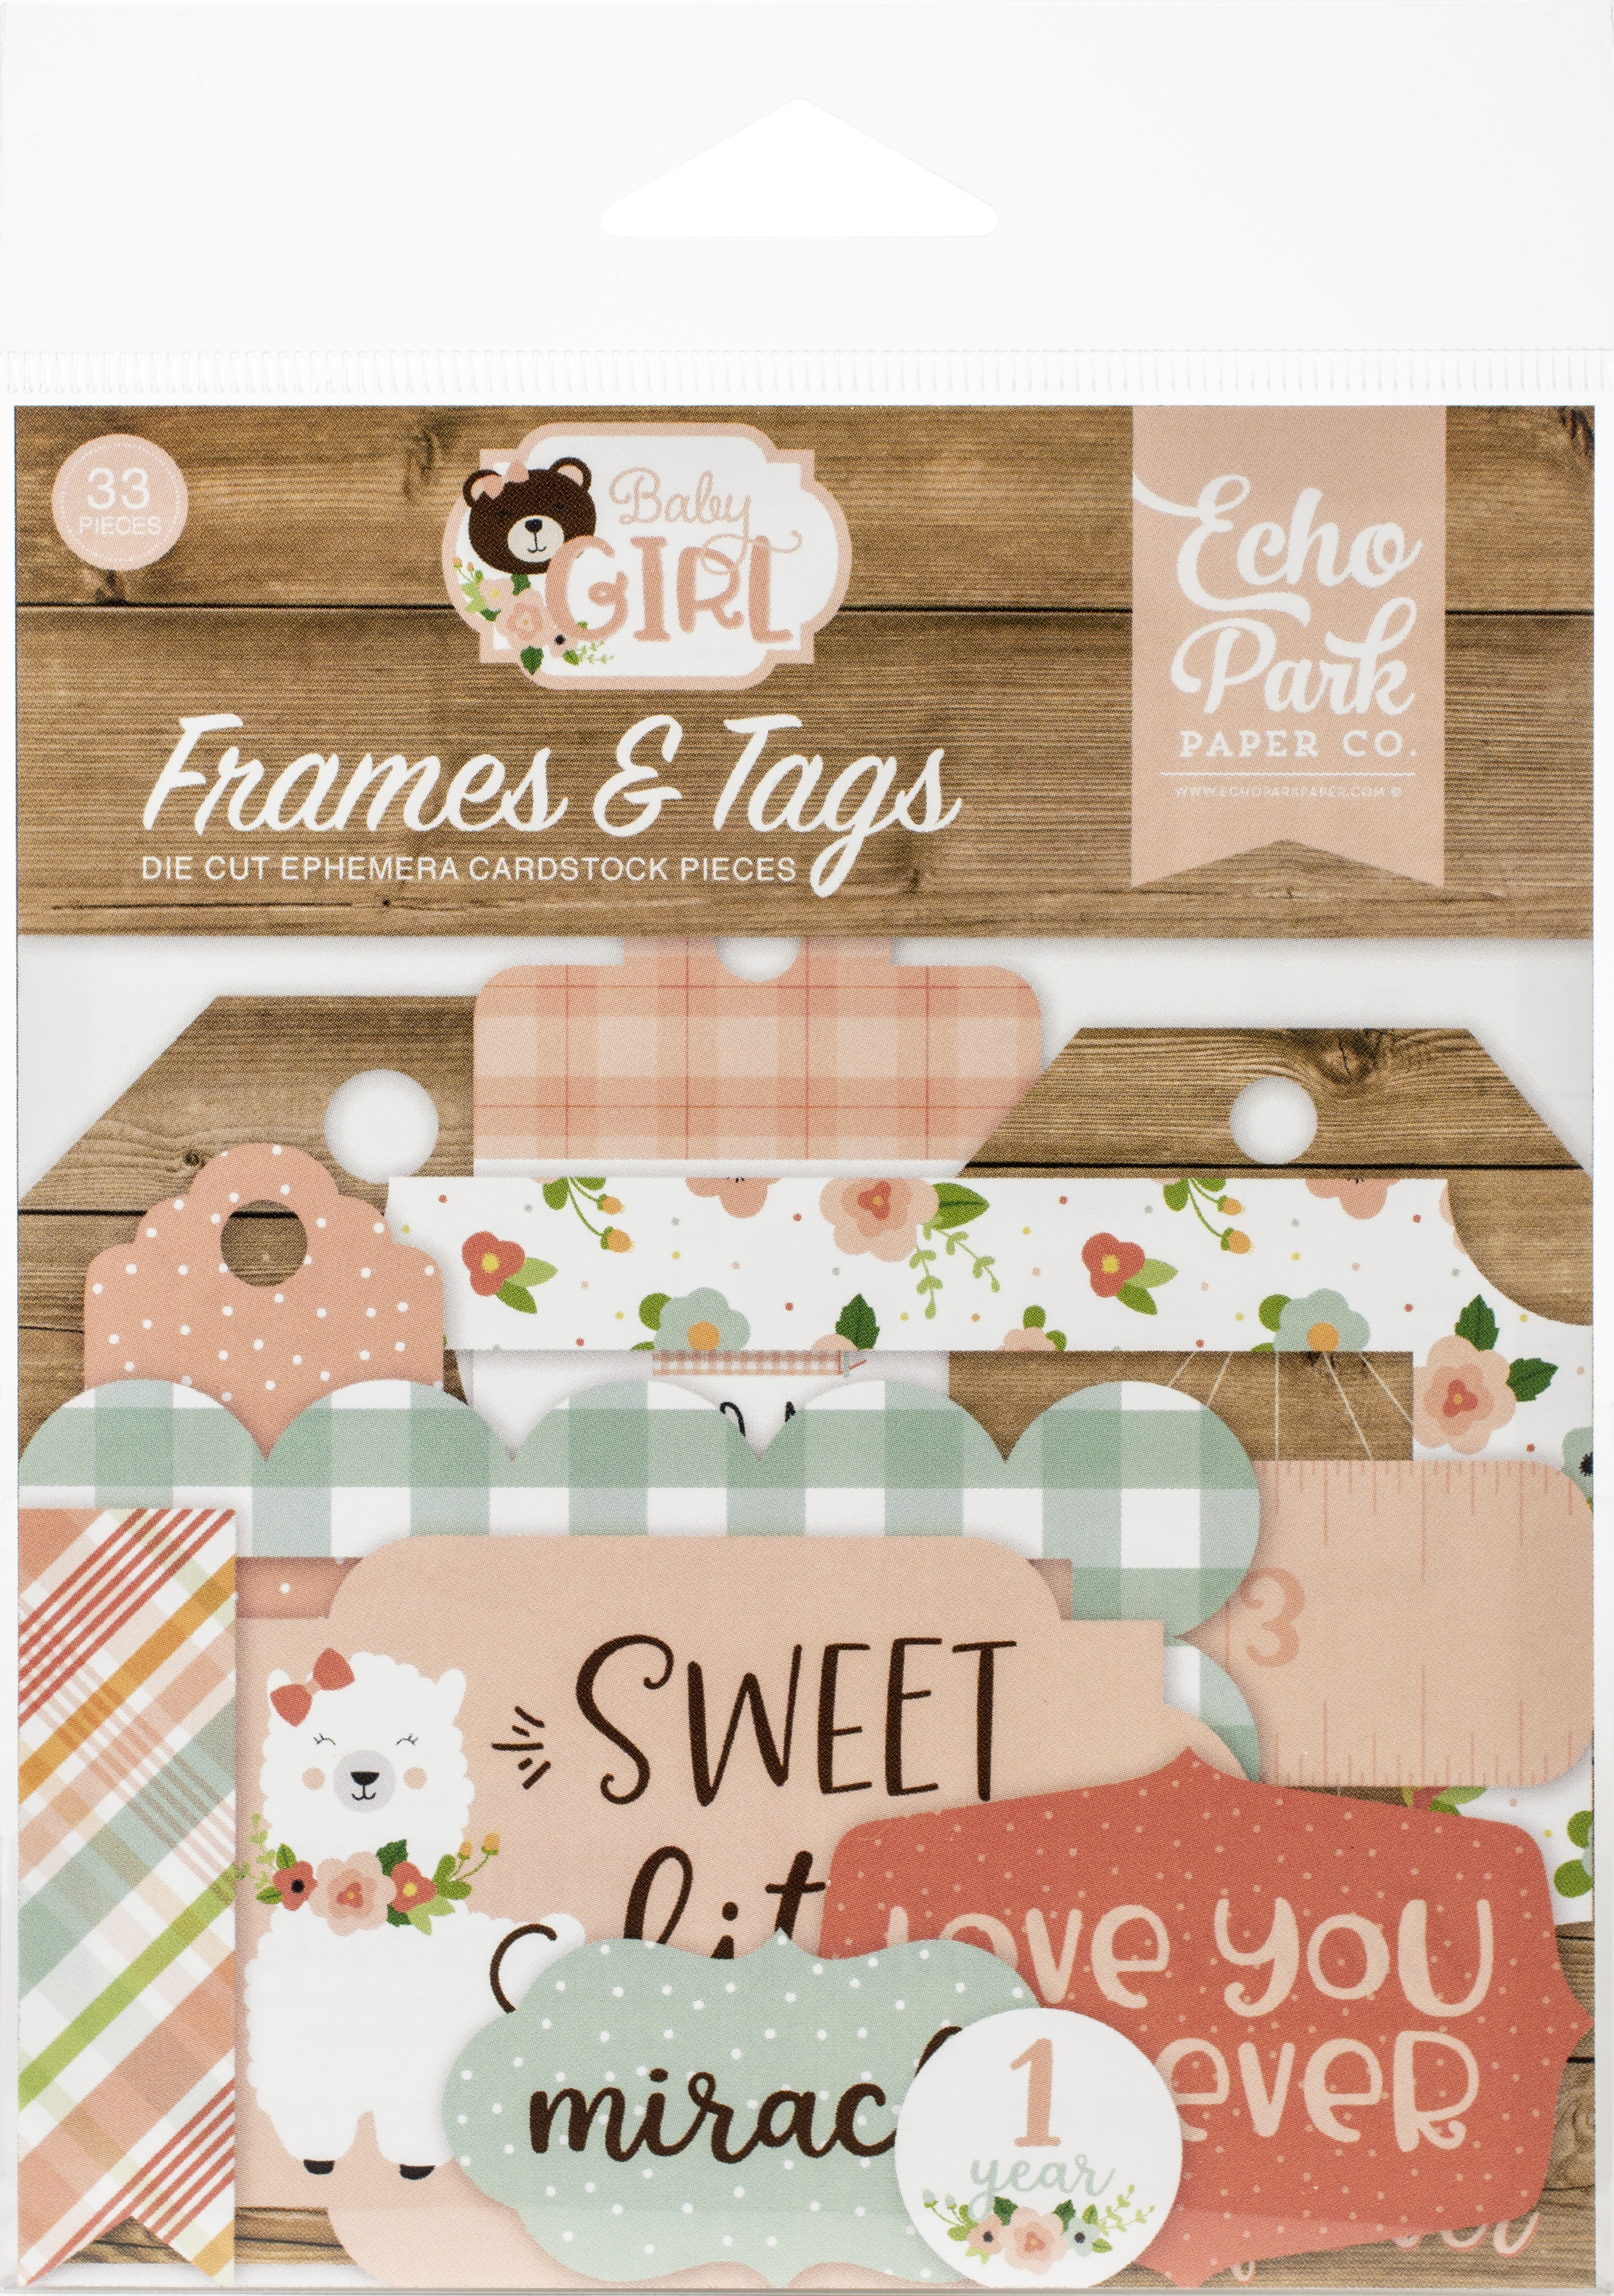 Baby Girl - Frames & Tags